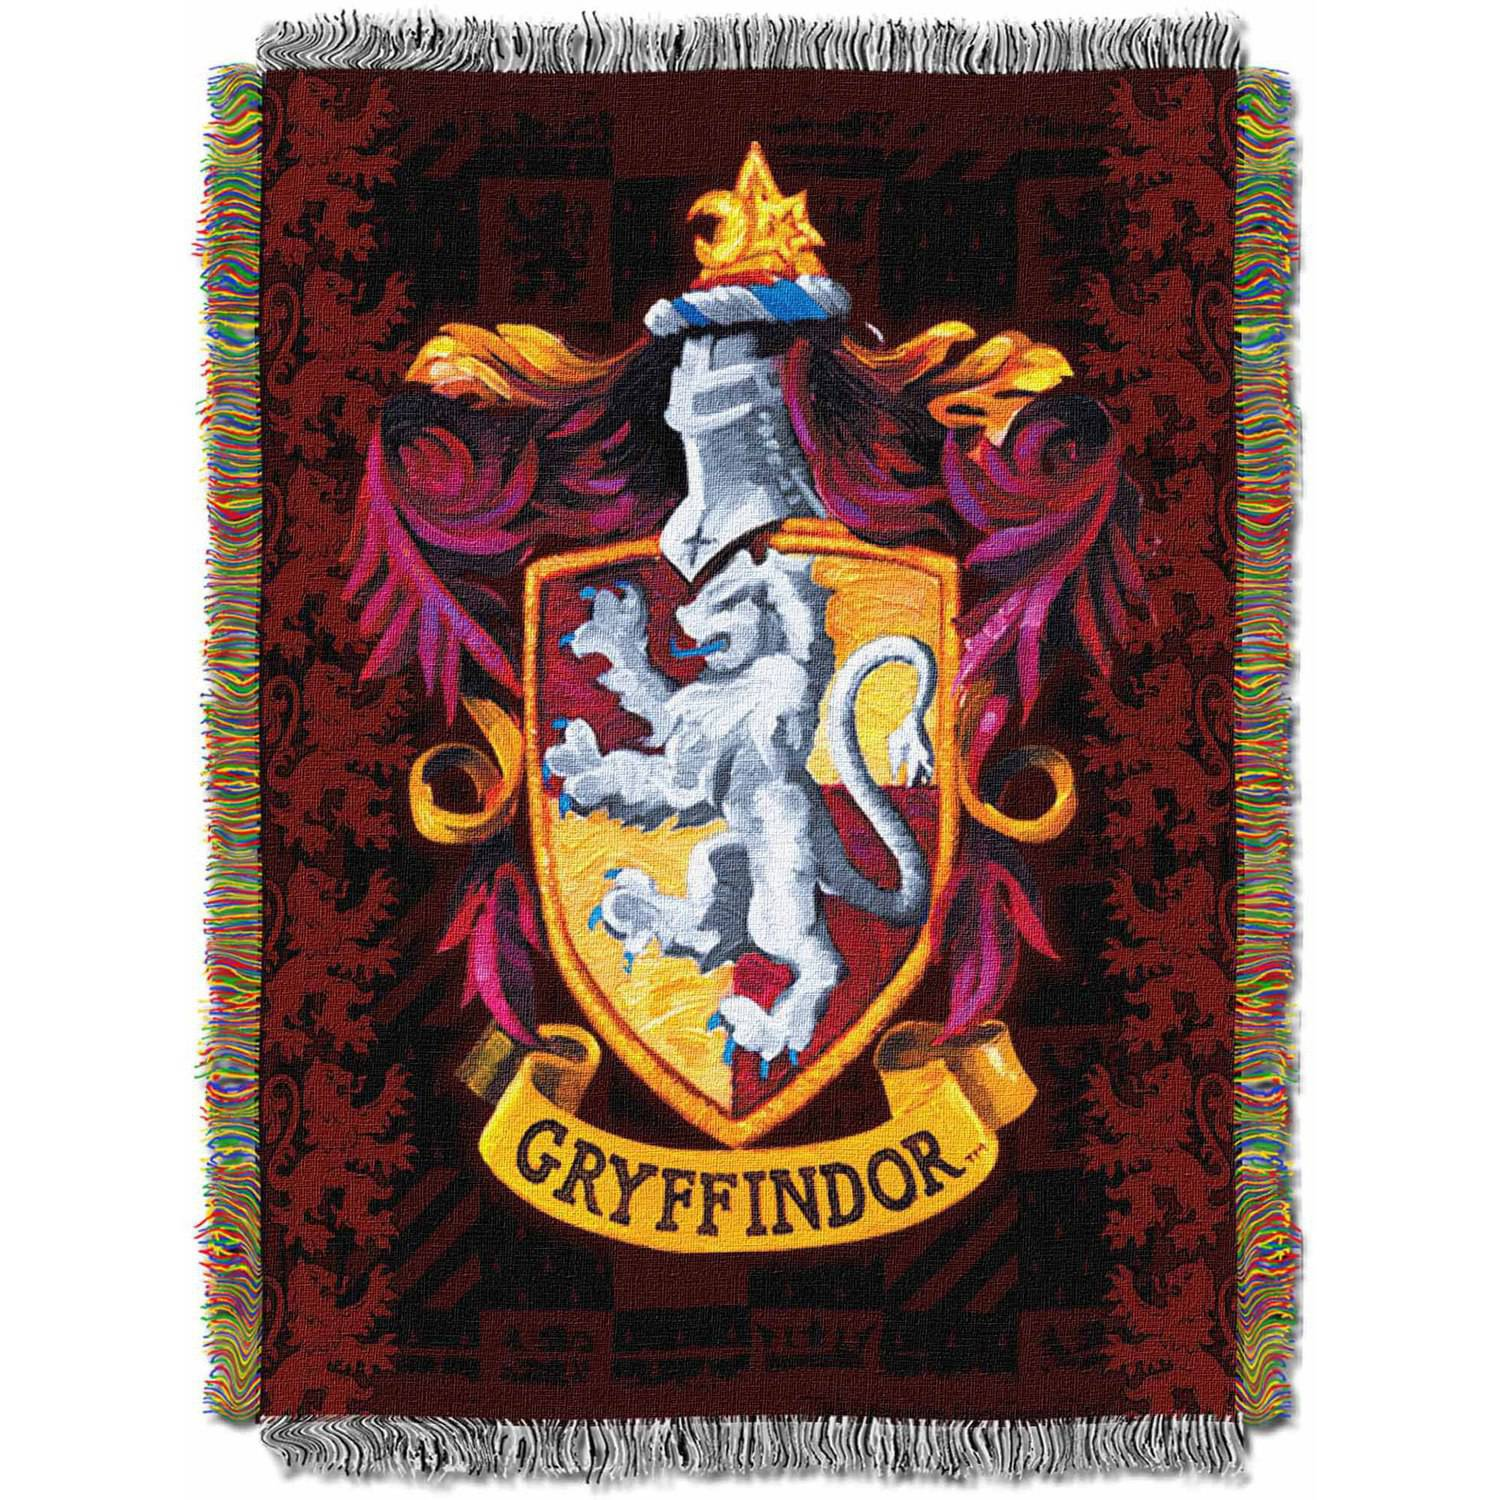 "Warner Bros. Harry Potter ""Gryffindor Crest"" 48"" x 60"" Woven Tapestry Throw"